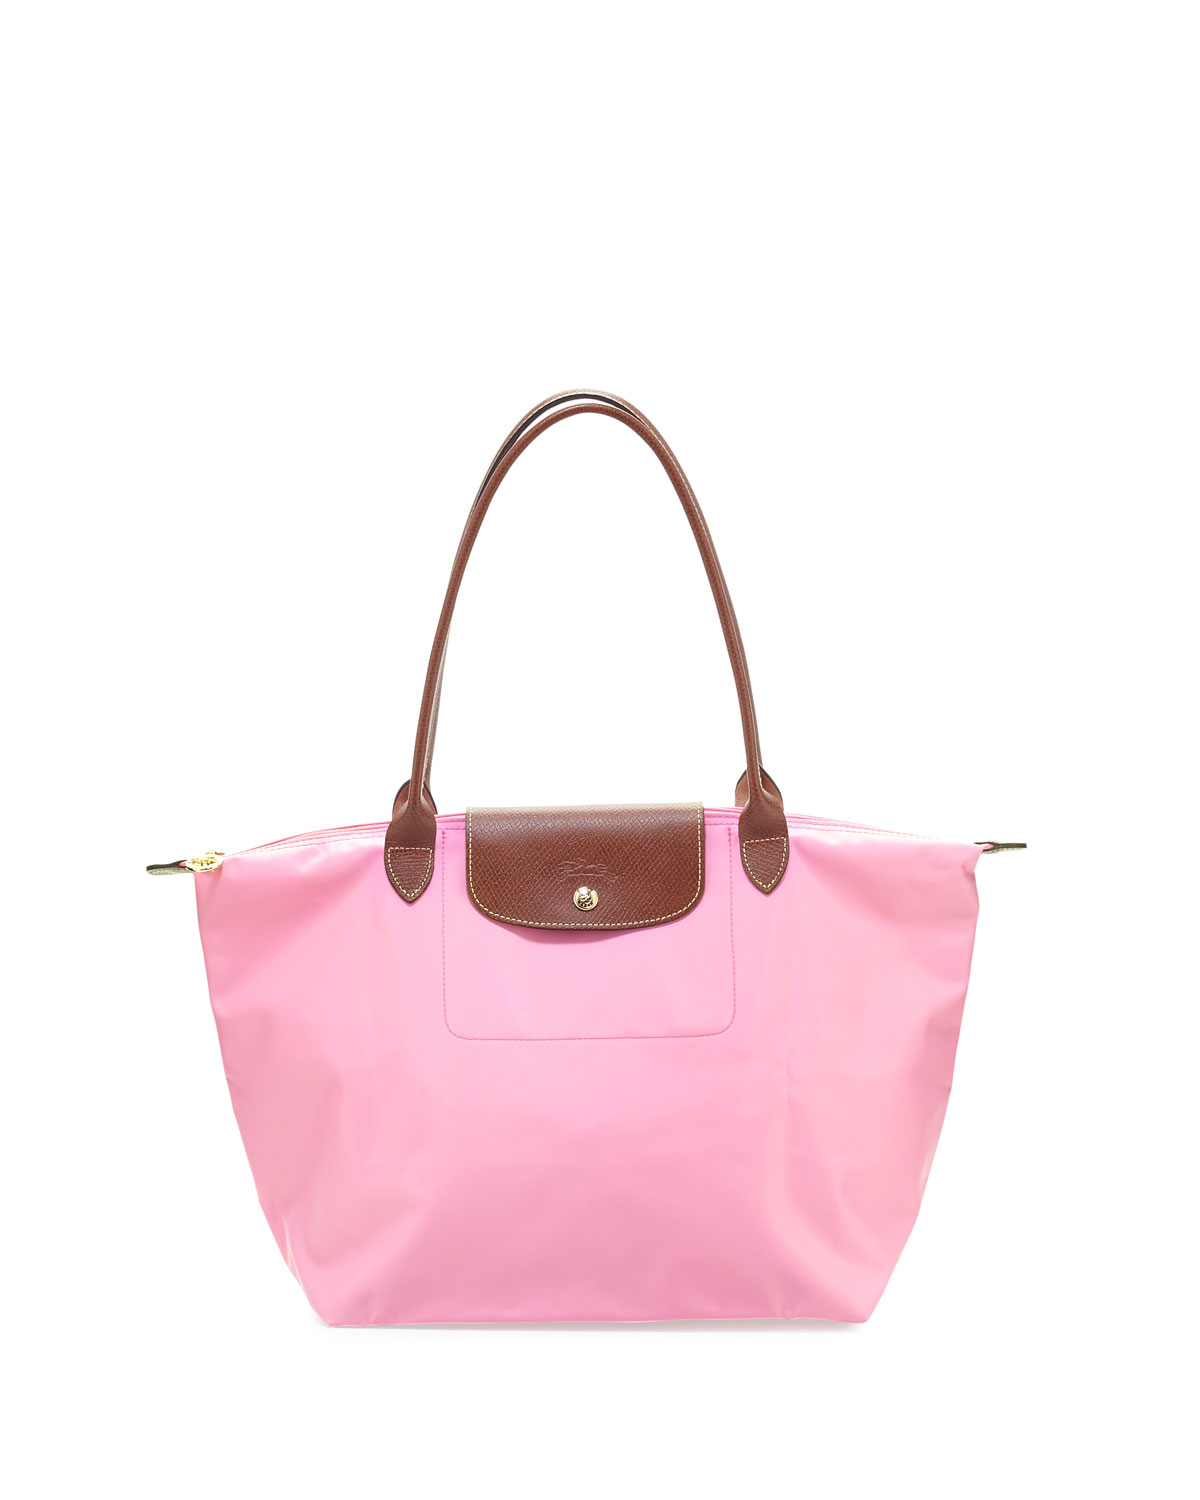 20665edc026 Longchamp Le Pliage Large Shoulder Tote Bag